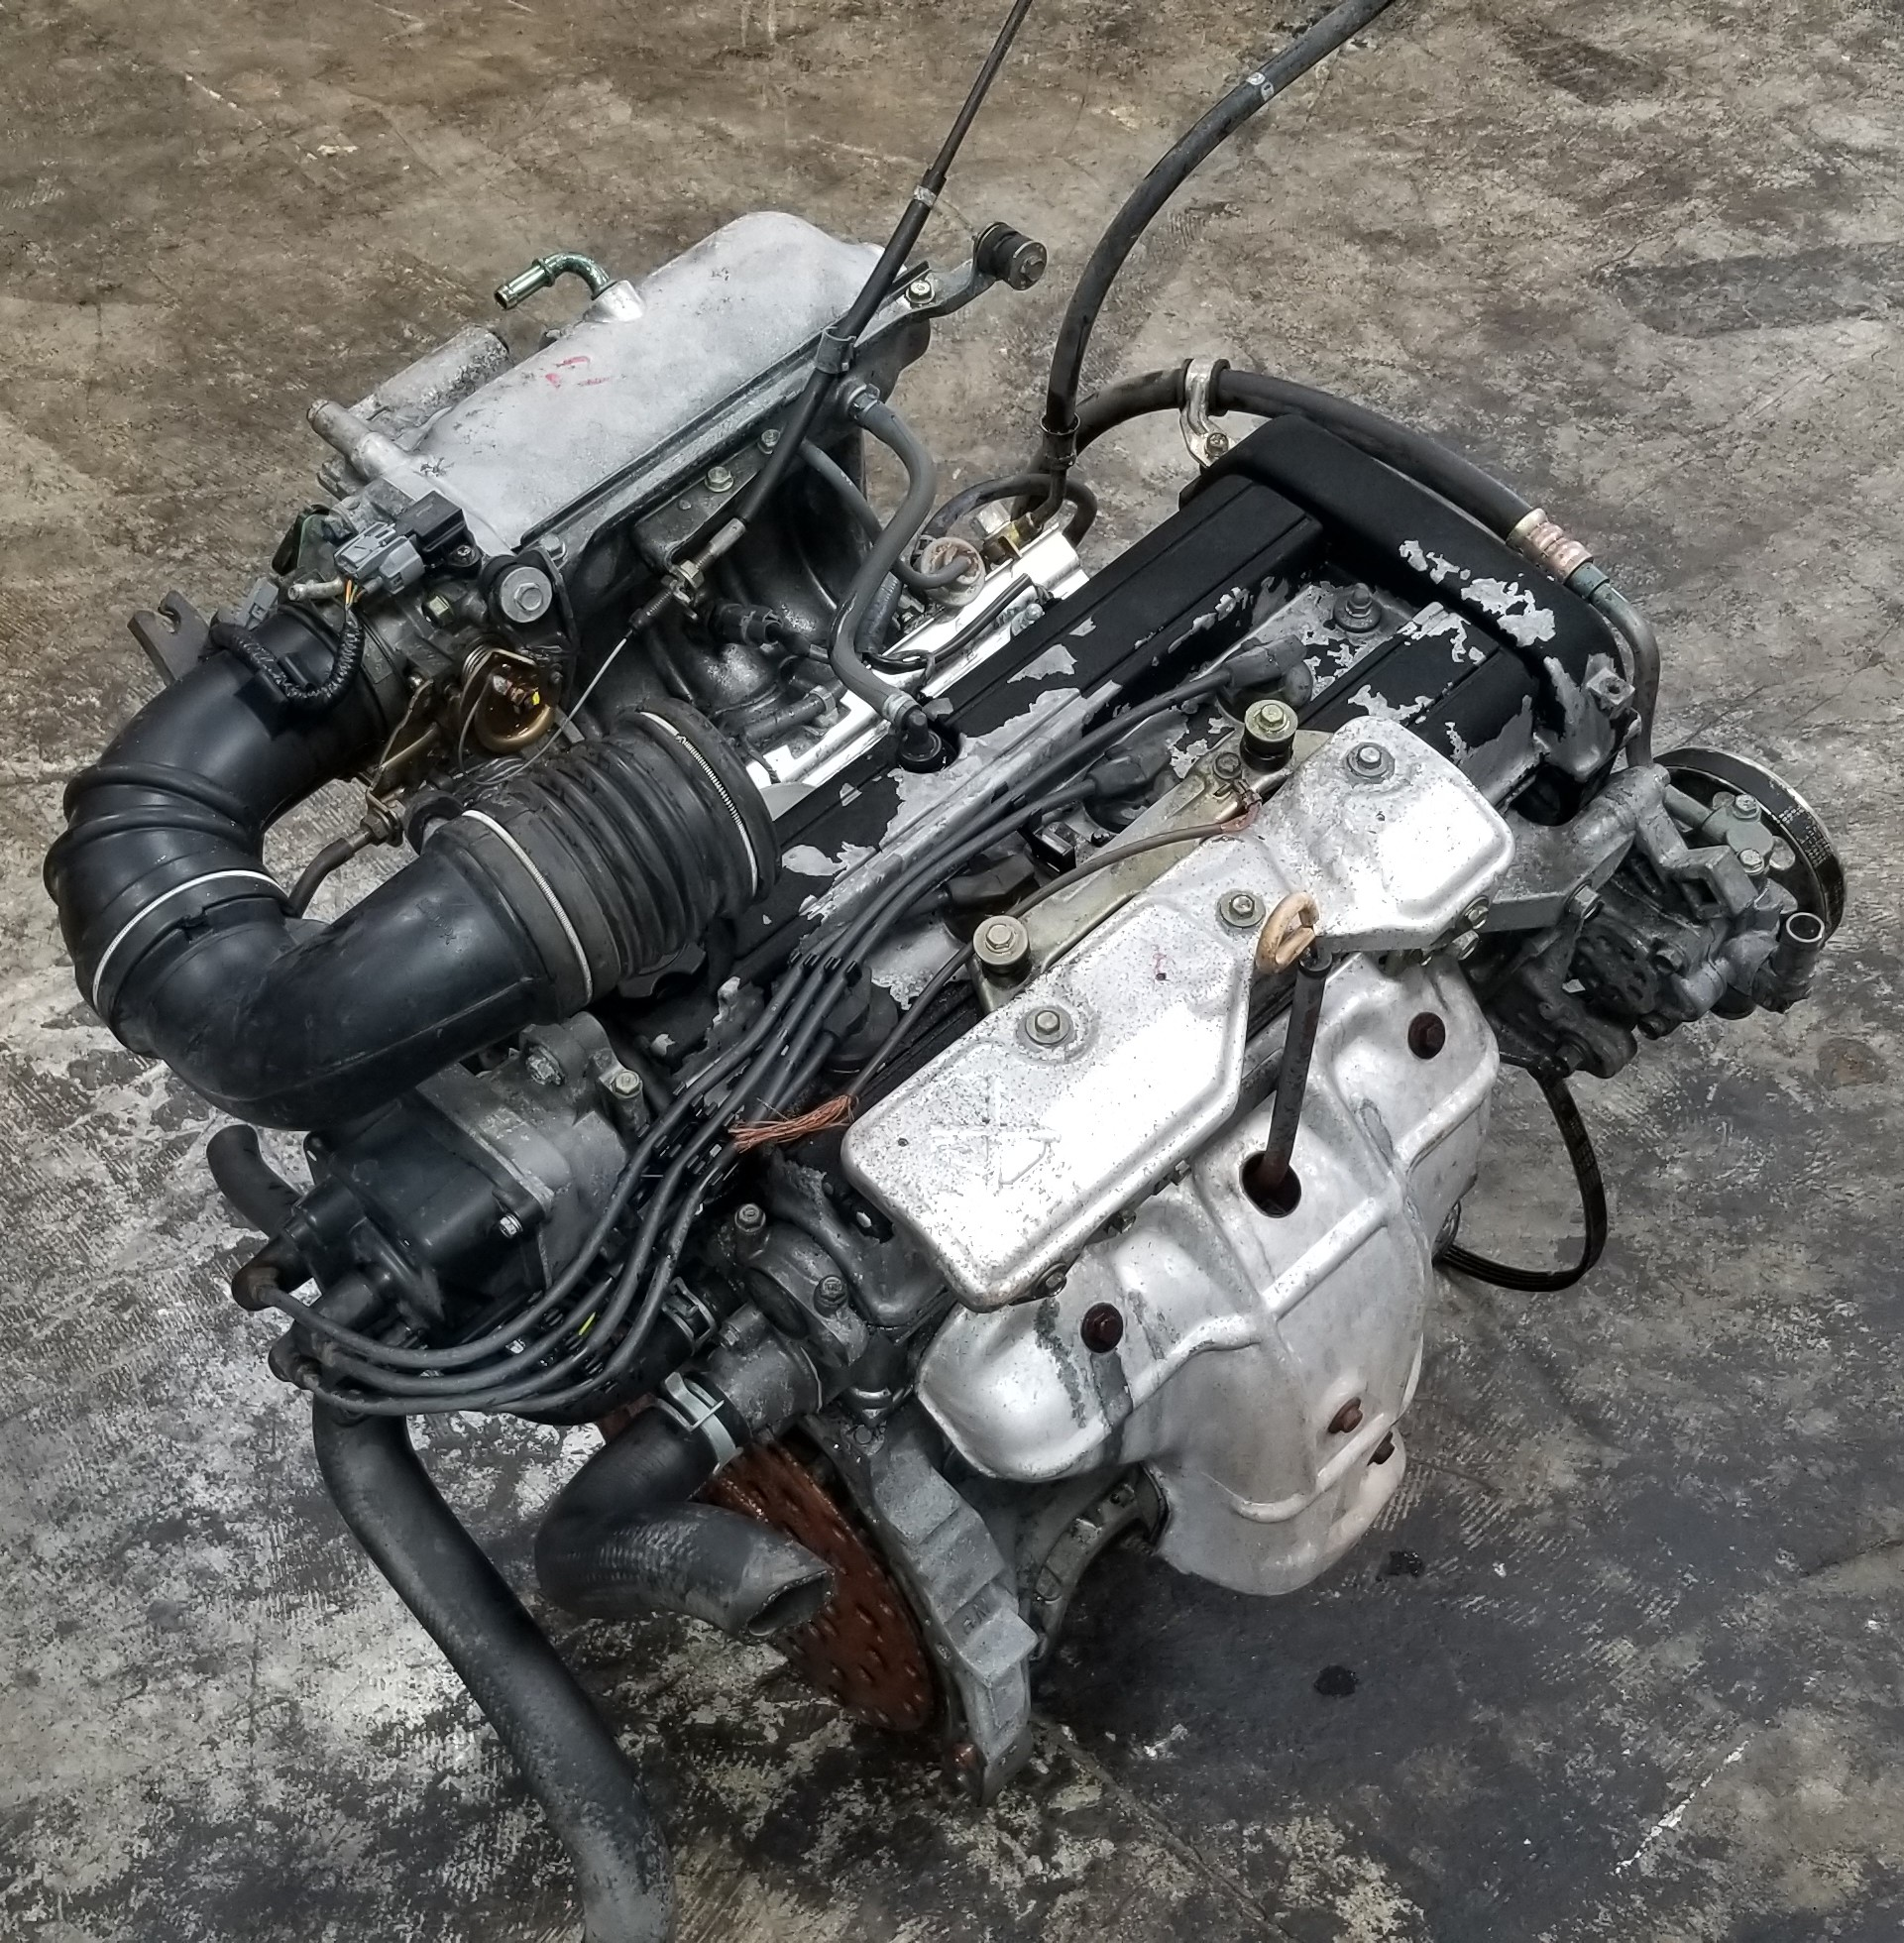 B20B 1997-1999 JDM Honda CRV Civic Integra B20 DOHC Engine Non-Vtec Low Comp | JDM Of San Diego